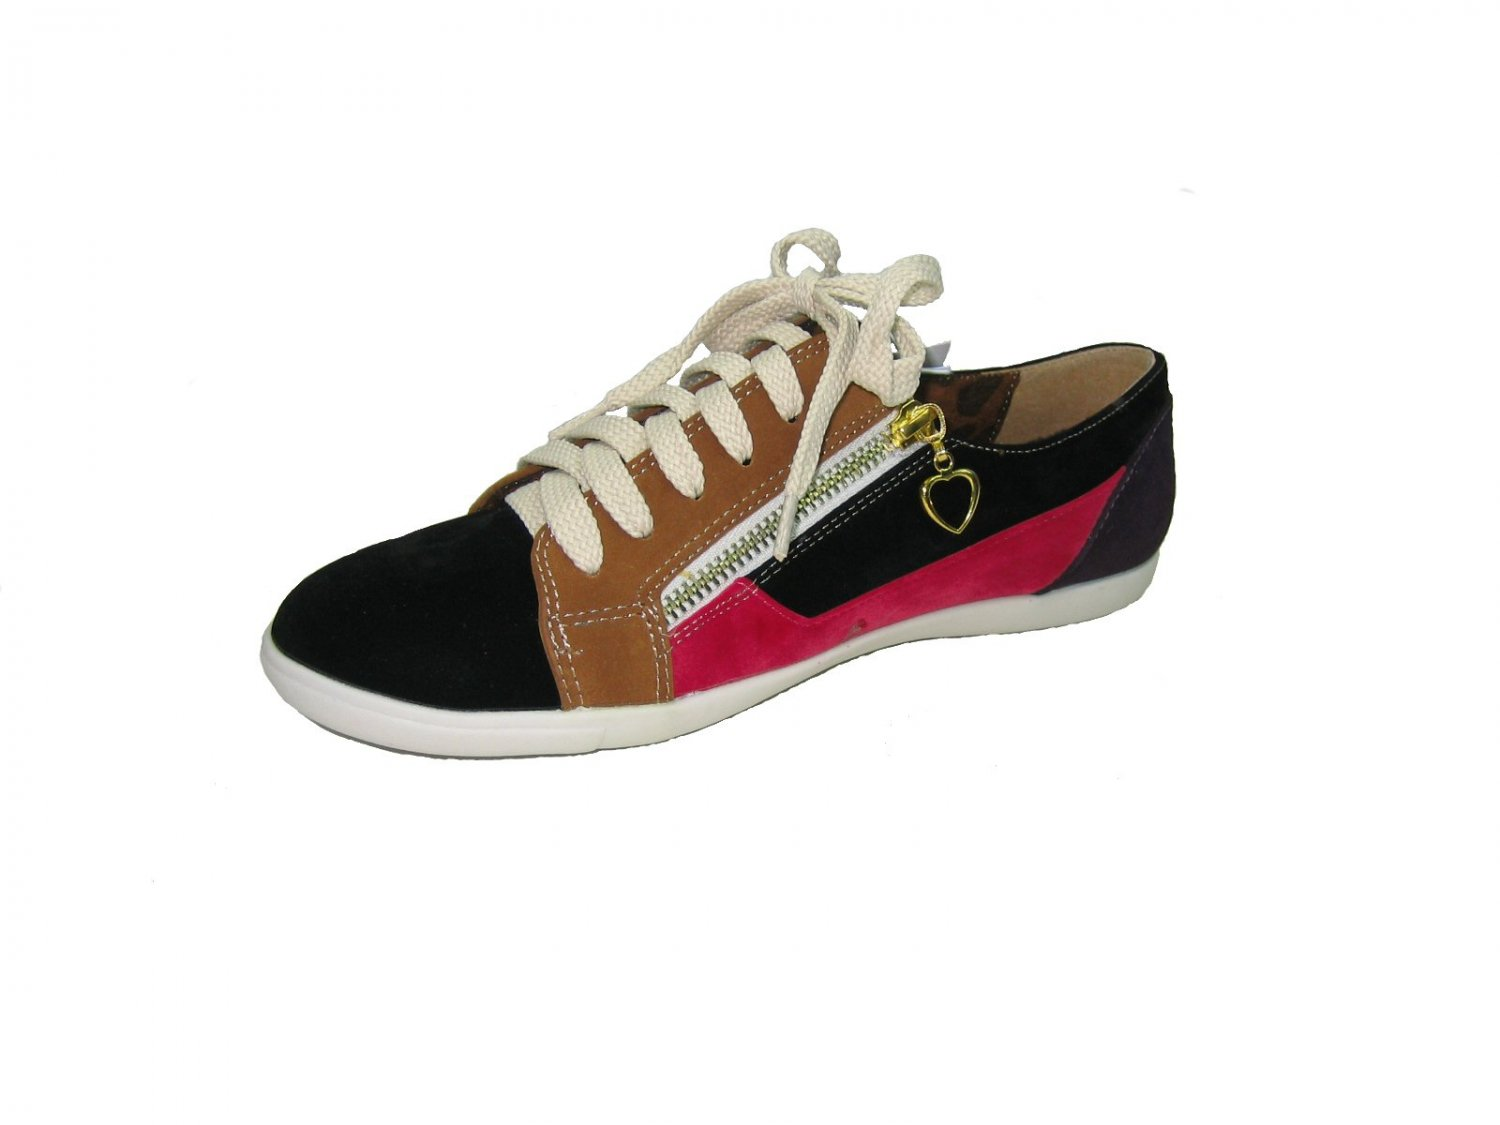 Nature breeze size 9 fashion sneakers women's decorative zippers black multi color